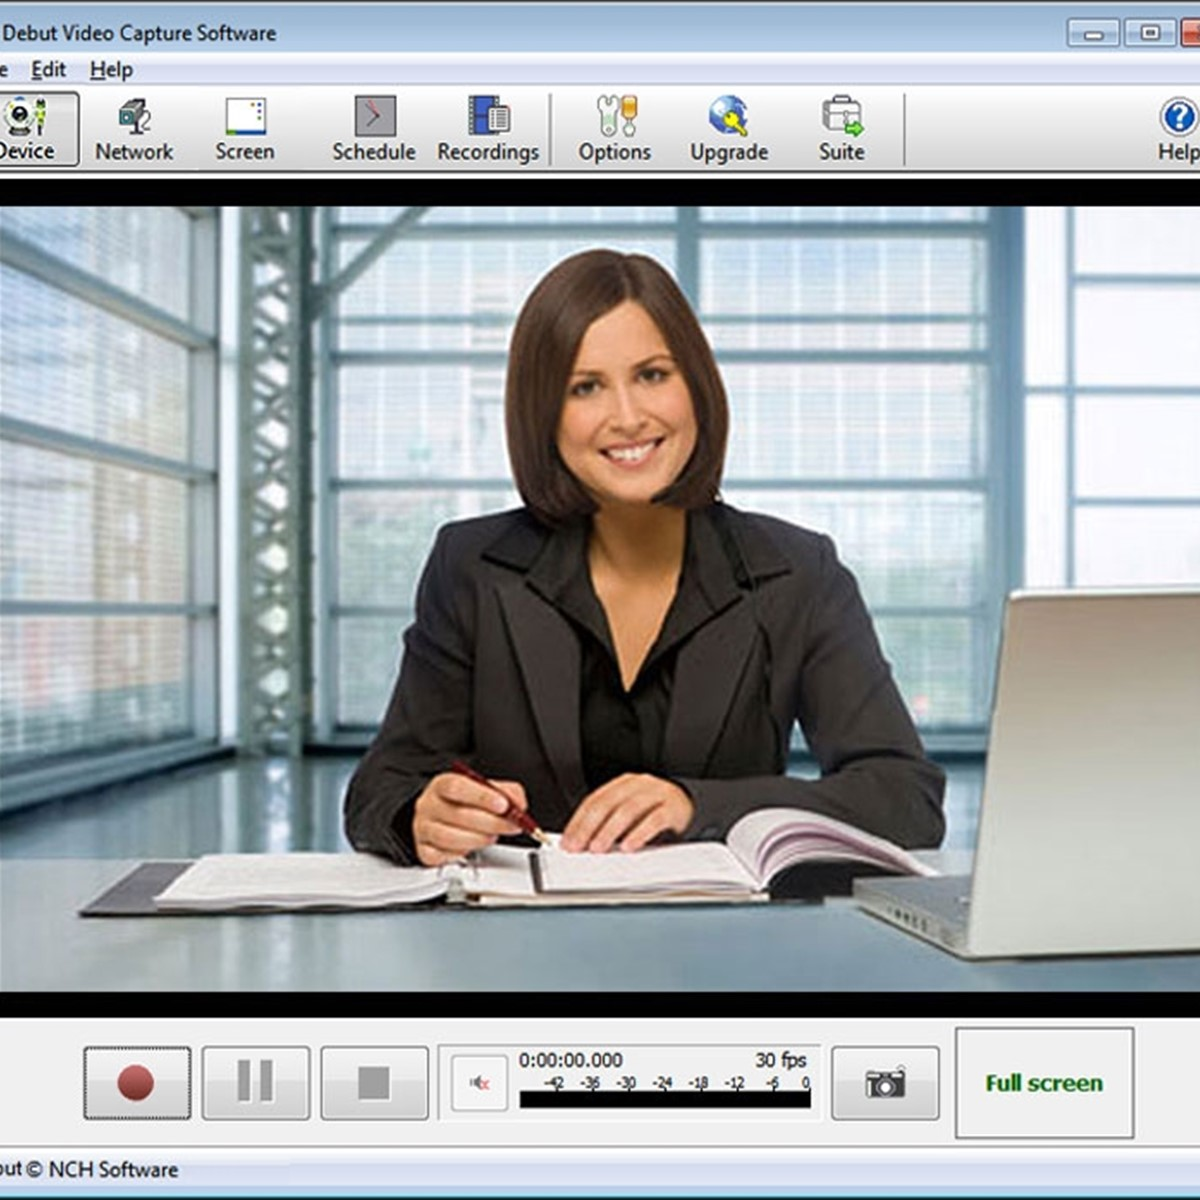 is nch debut video capture software safe